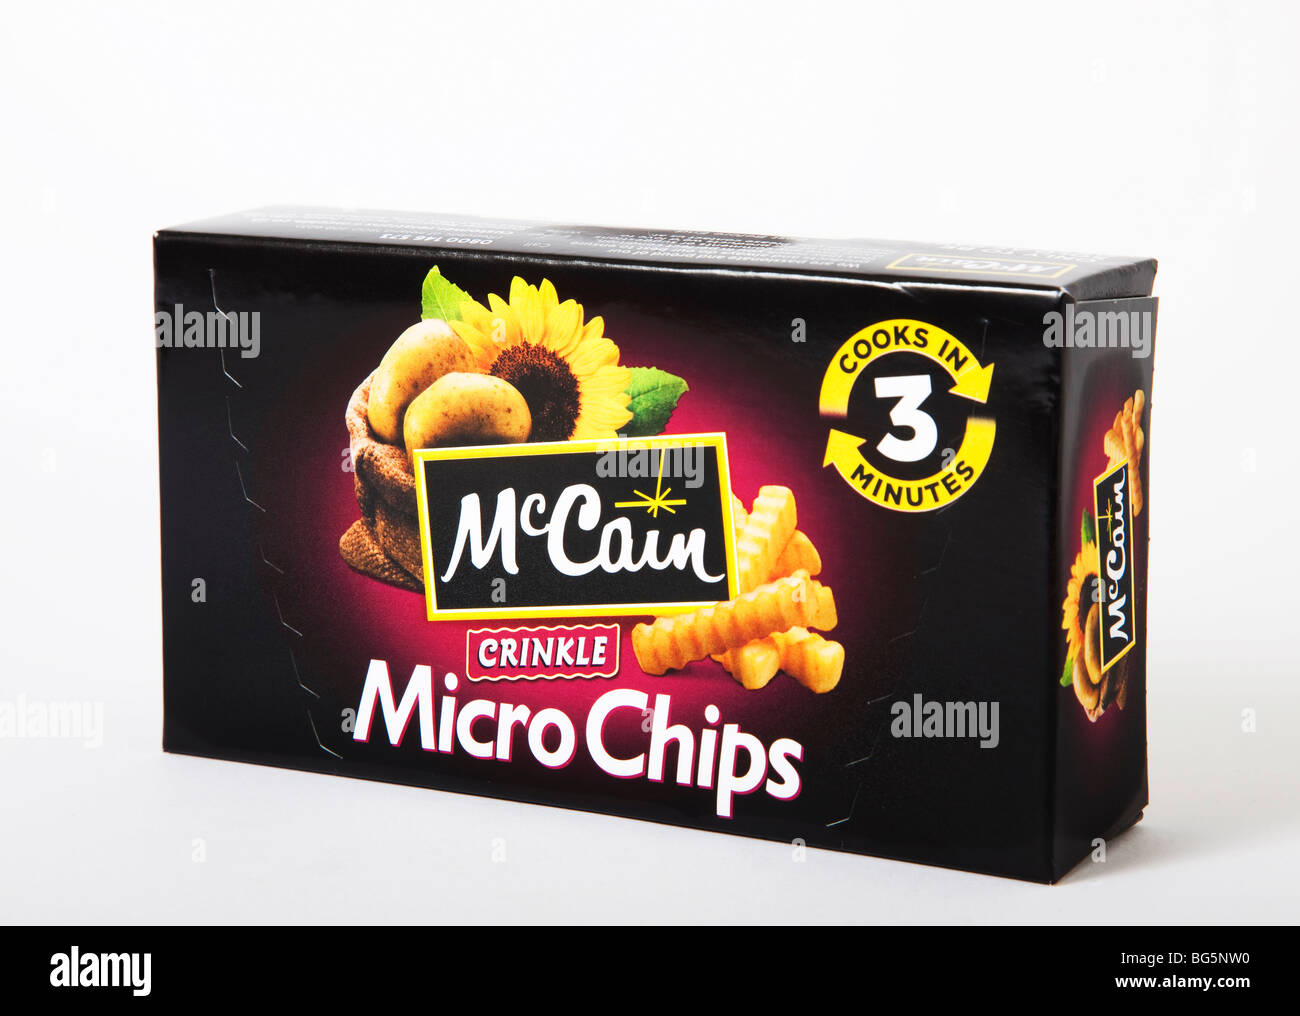 student junk food 'micro chips' 'microwave chips' mccain - Stock Image